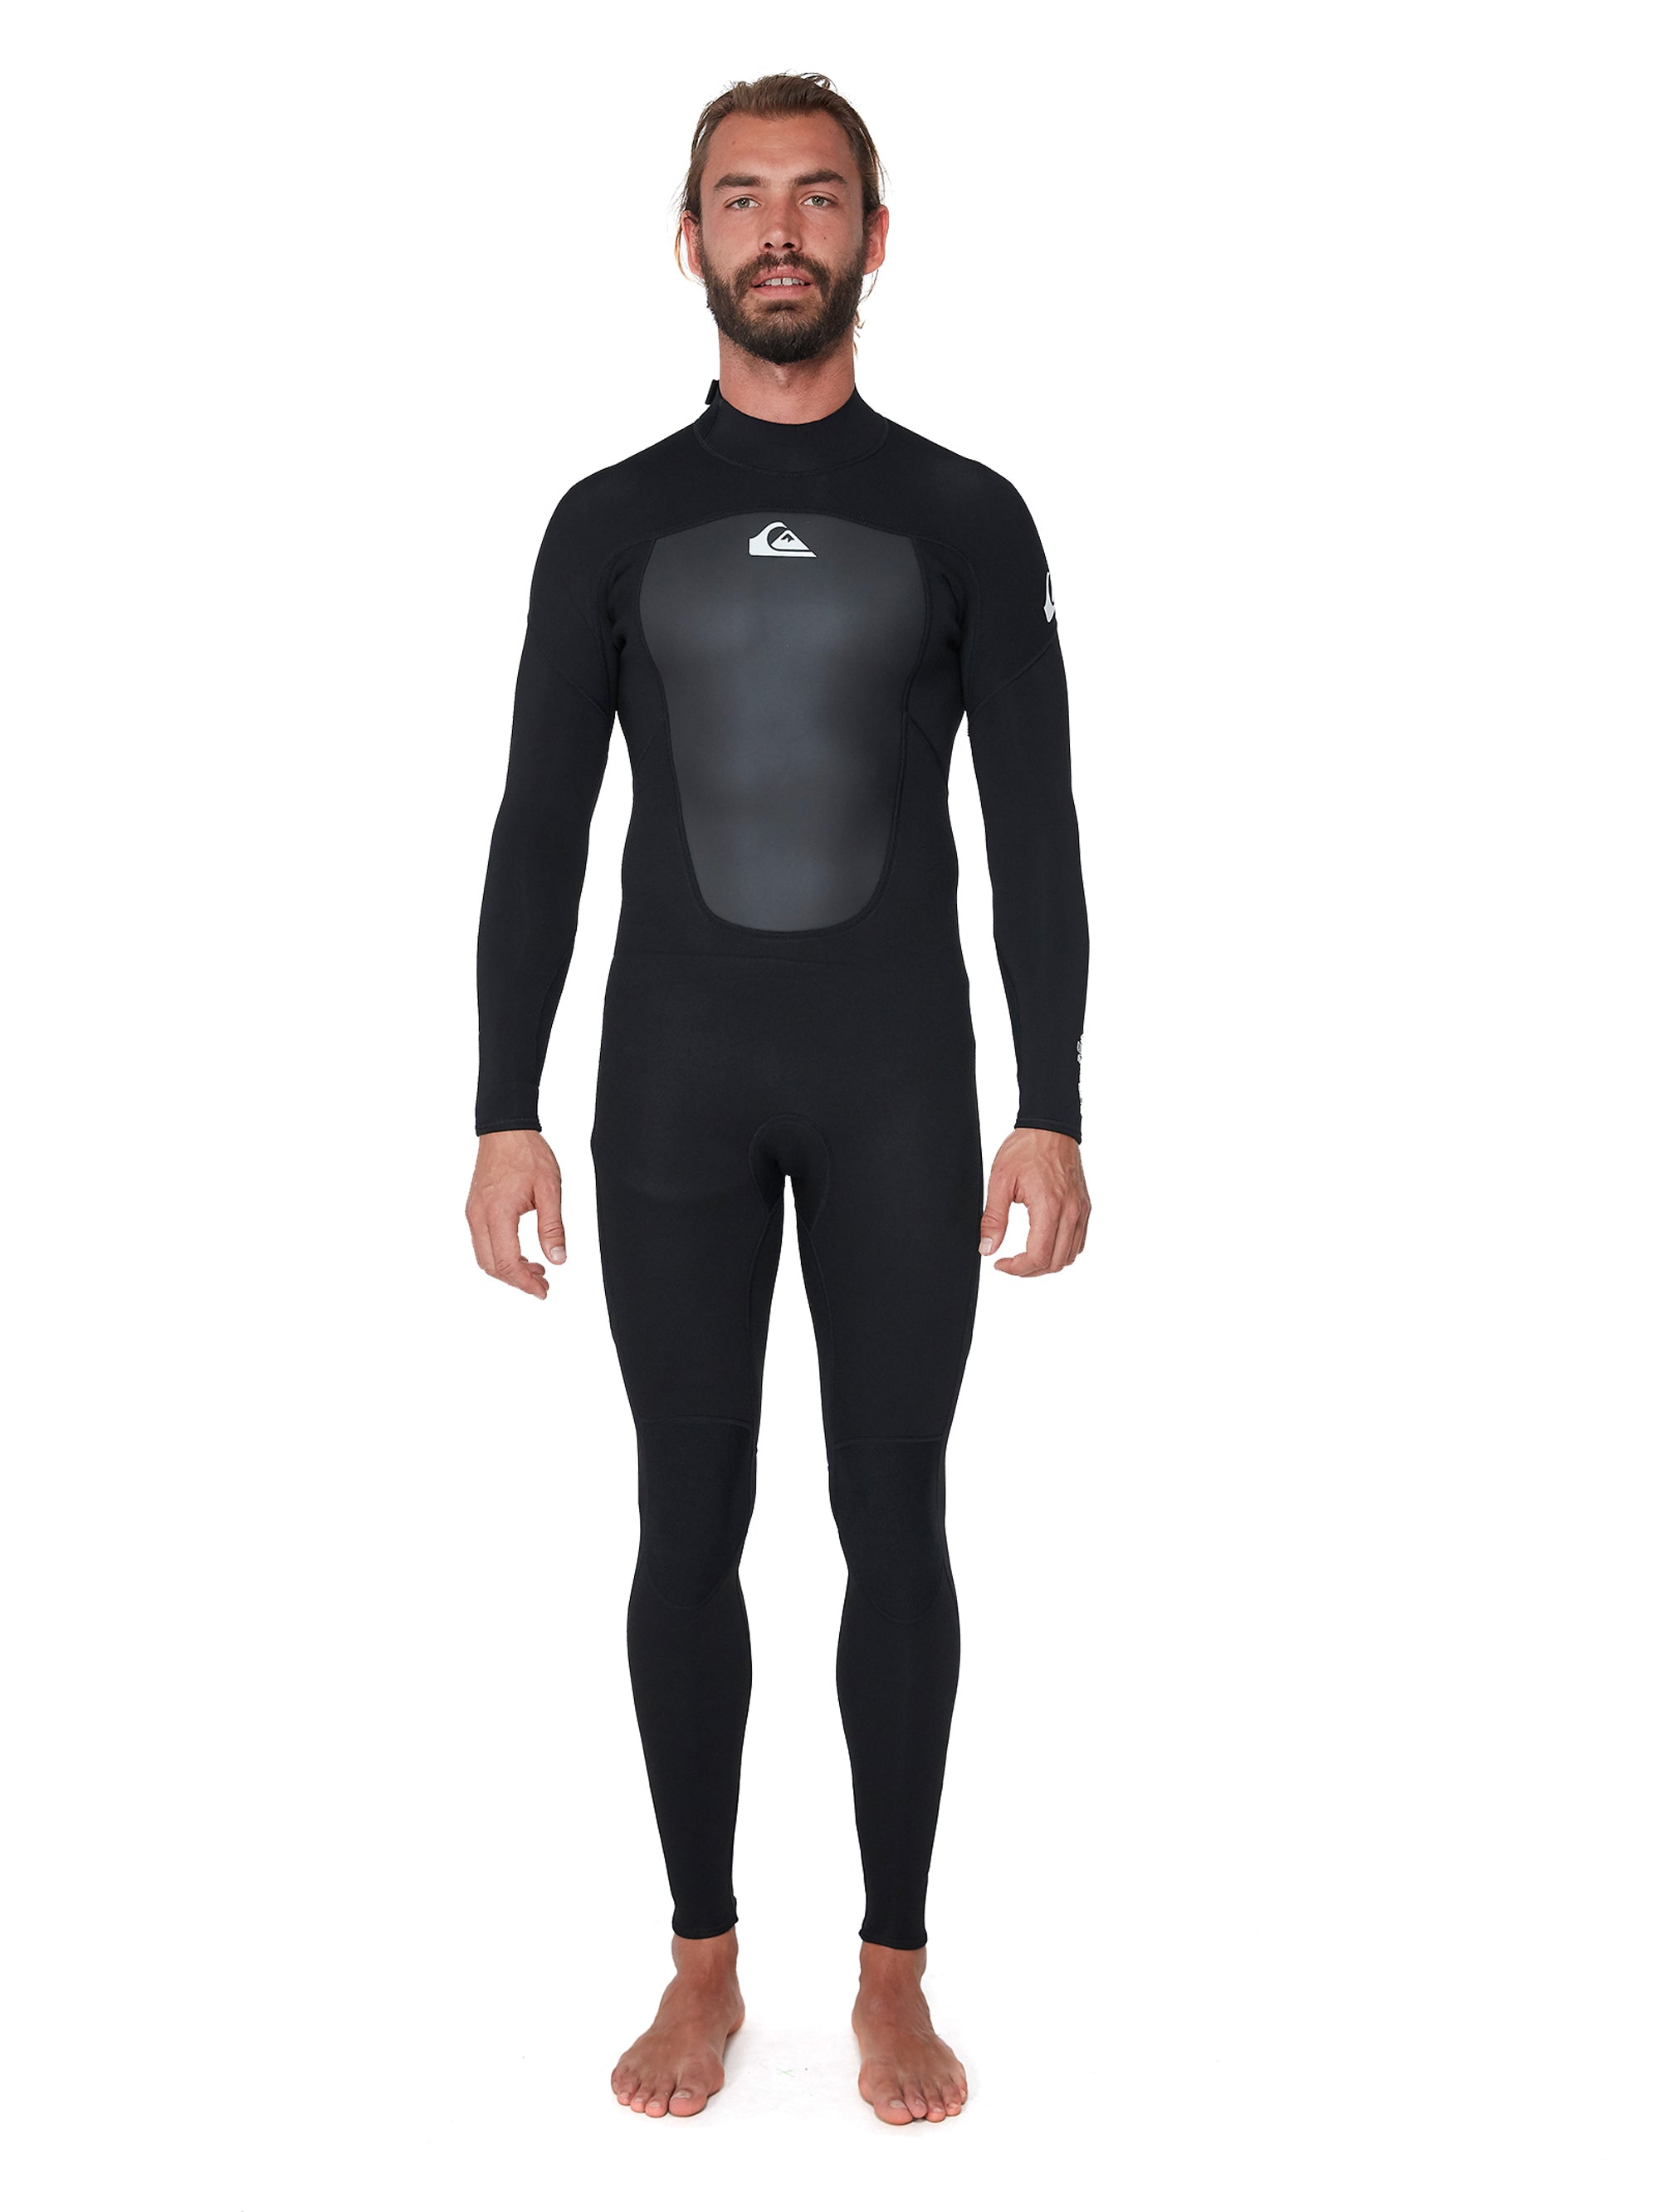 Quiksilver Prologue 3/2 Men's Back Zip Wetsuit